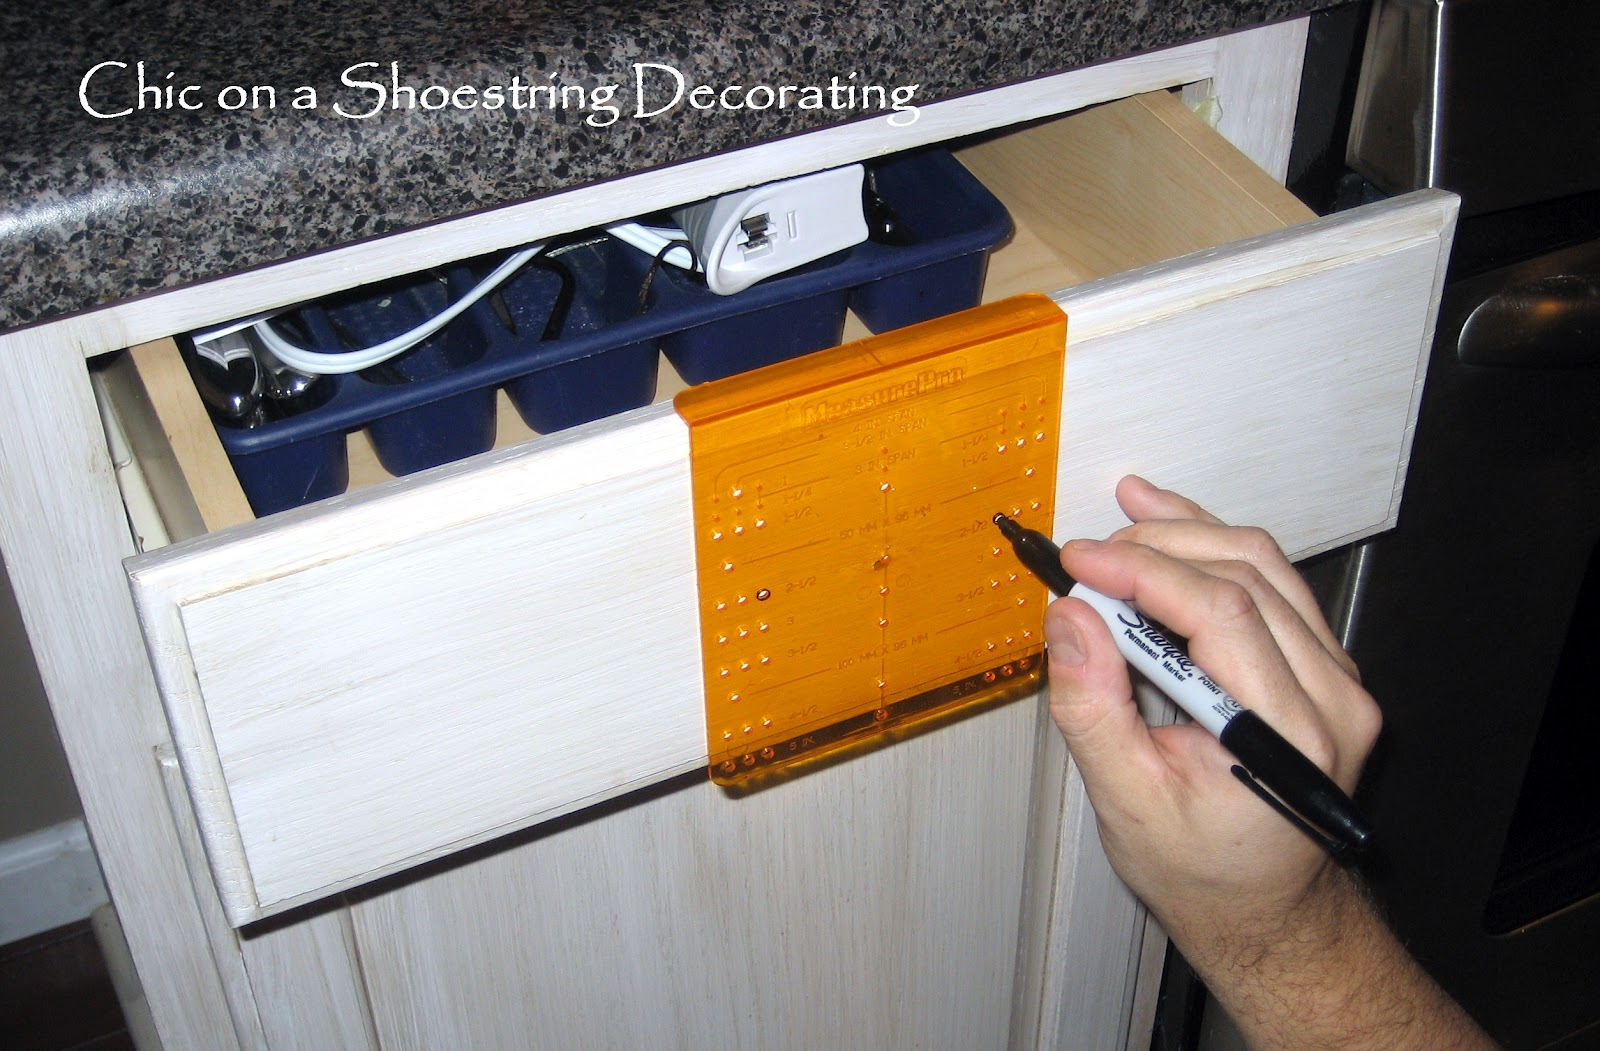 Changing Hinges On Kitchen Cabinets Steel Table Chic A Shoestring Decorating How To Change Your